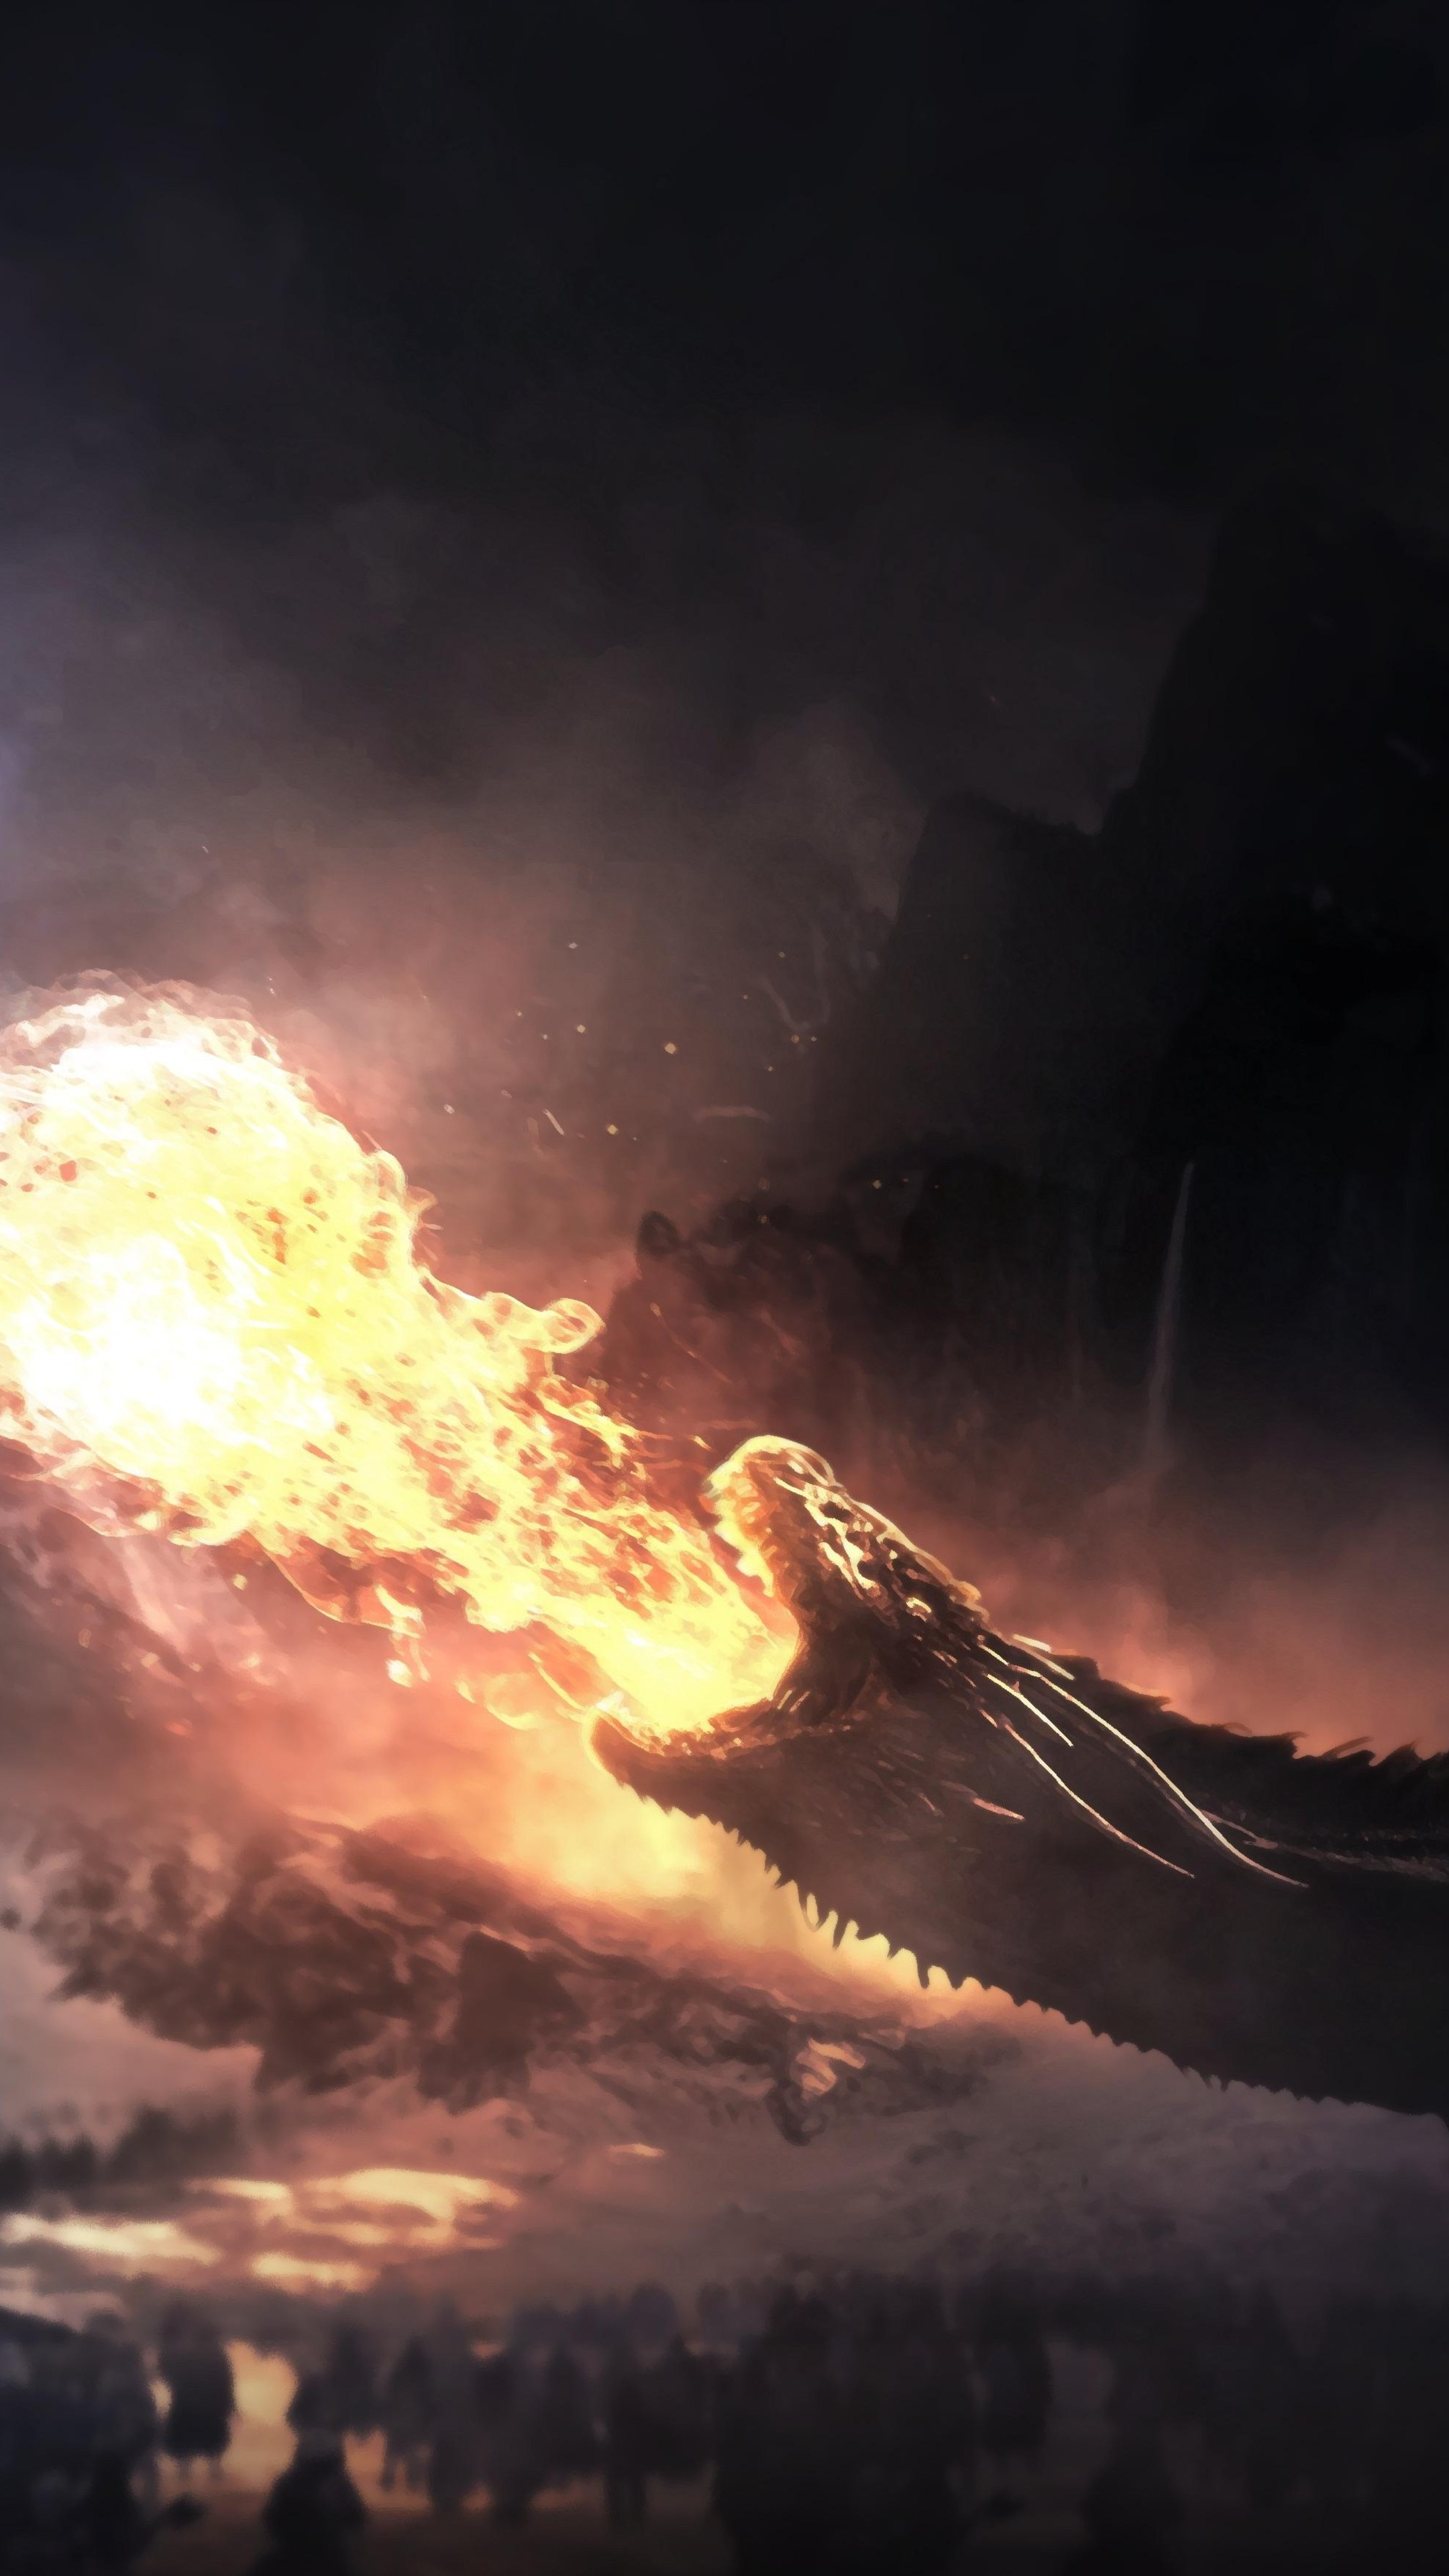 dragons-fight-game-of-thrones-season-8-ba-2160x3840